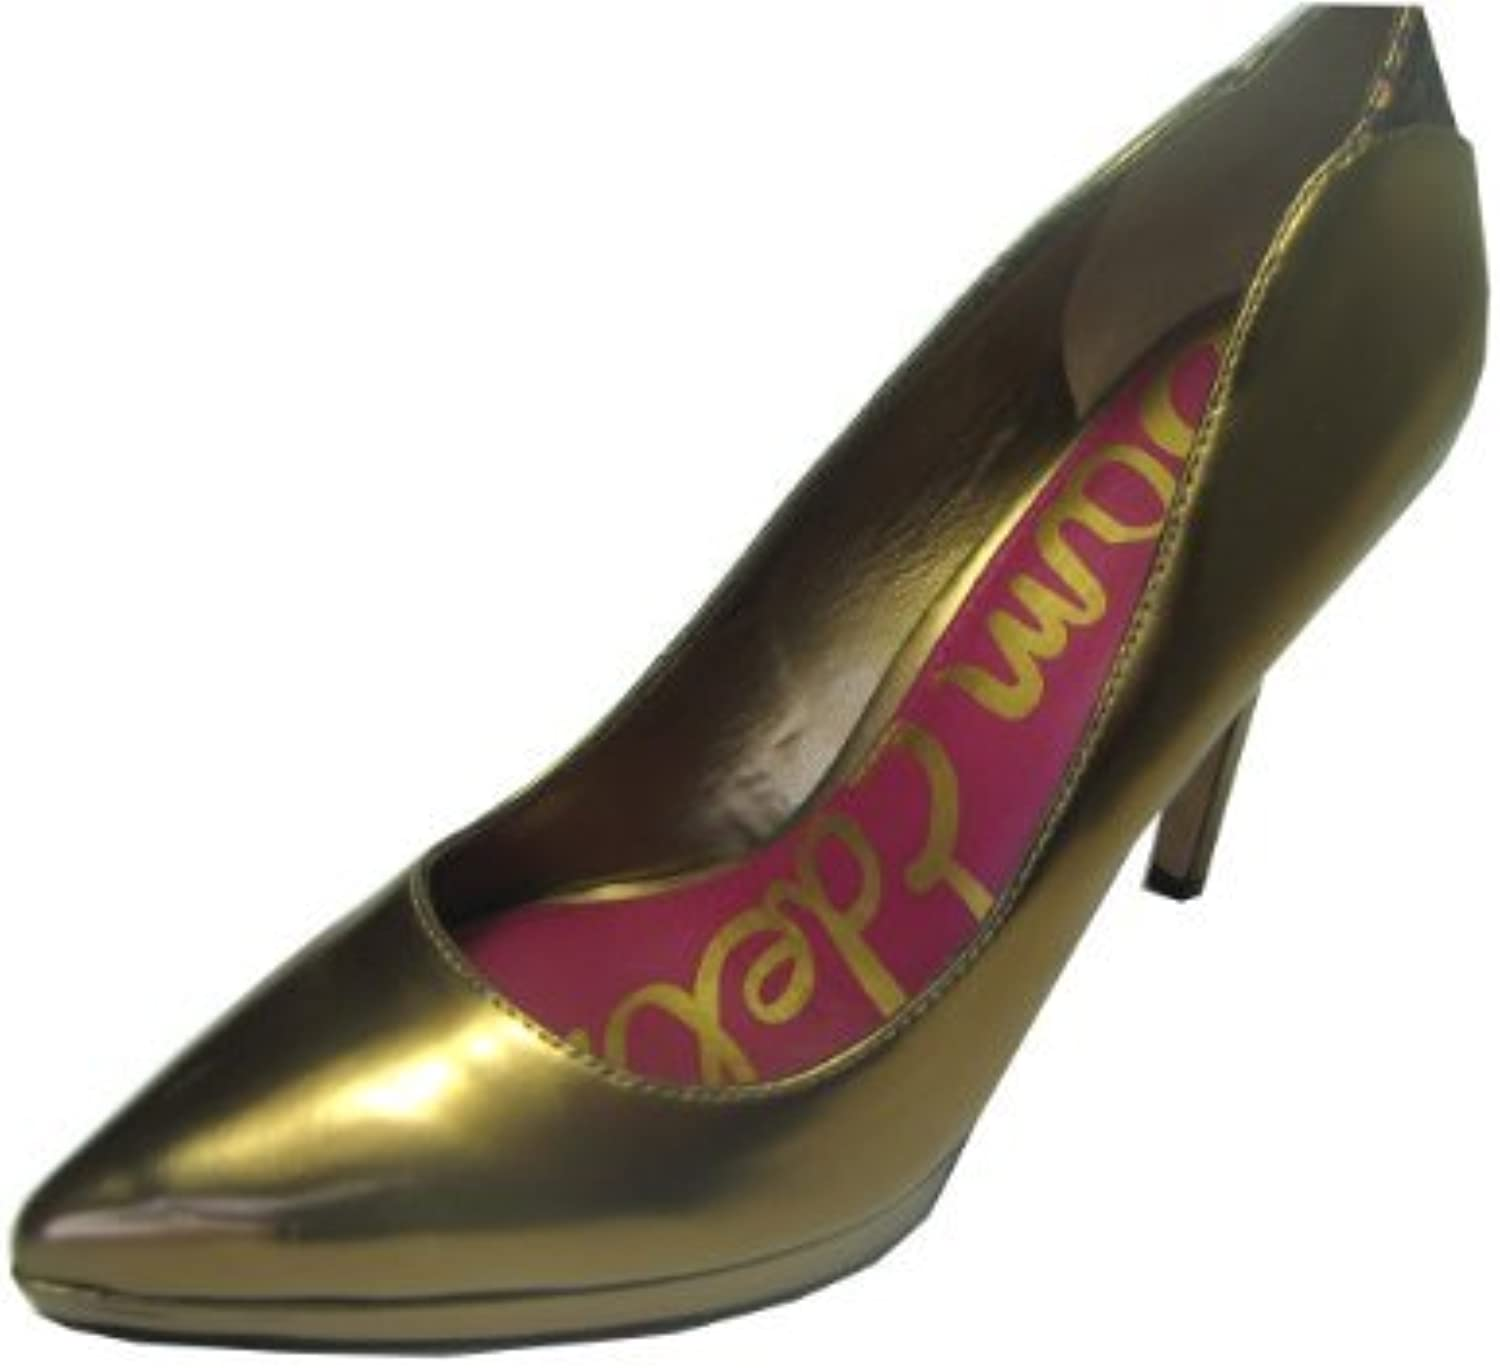 Sam Edelman Pump Heels Metallic Bronz Leather Size 7.5m 8m, 8.5m Closeout